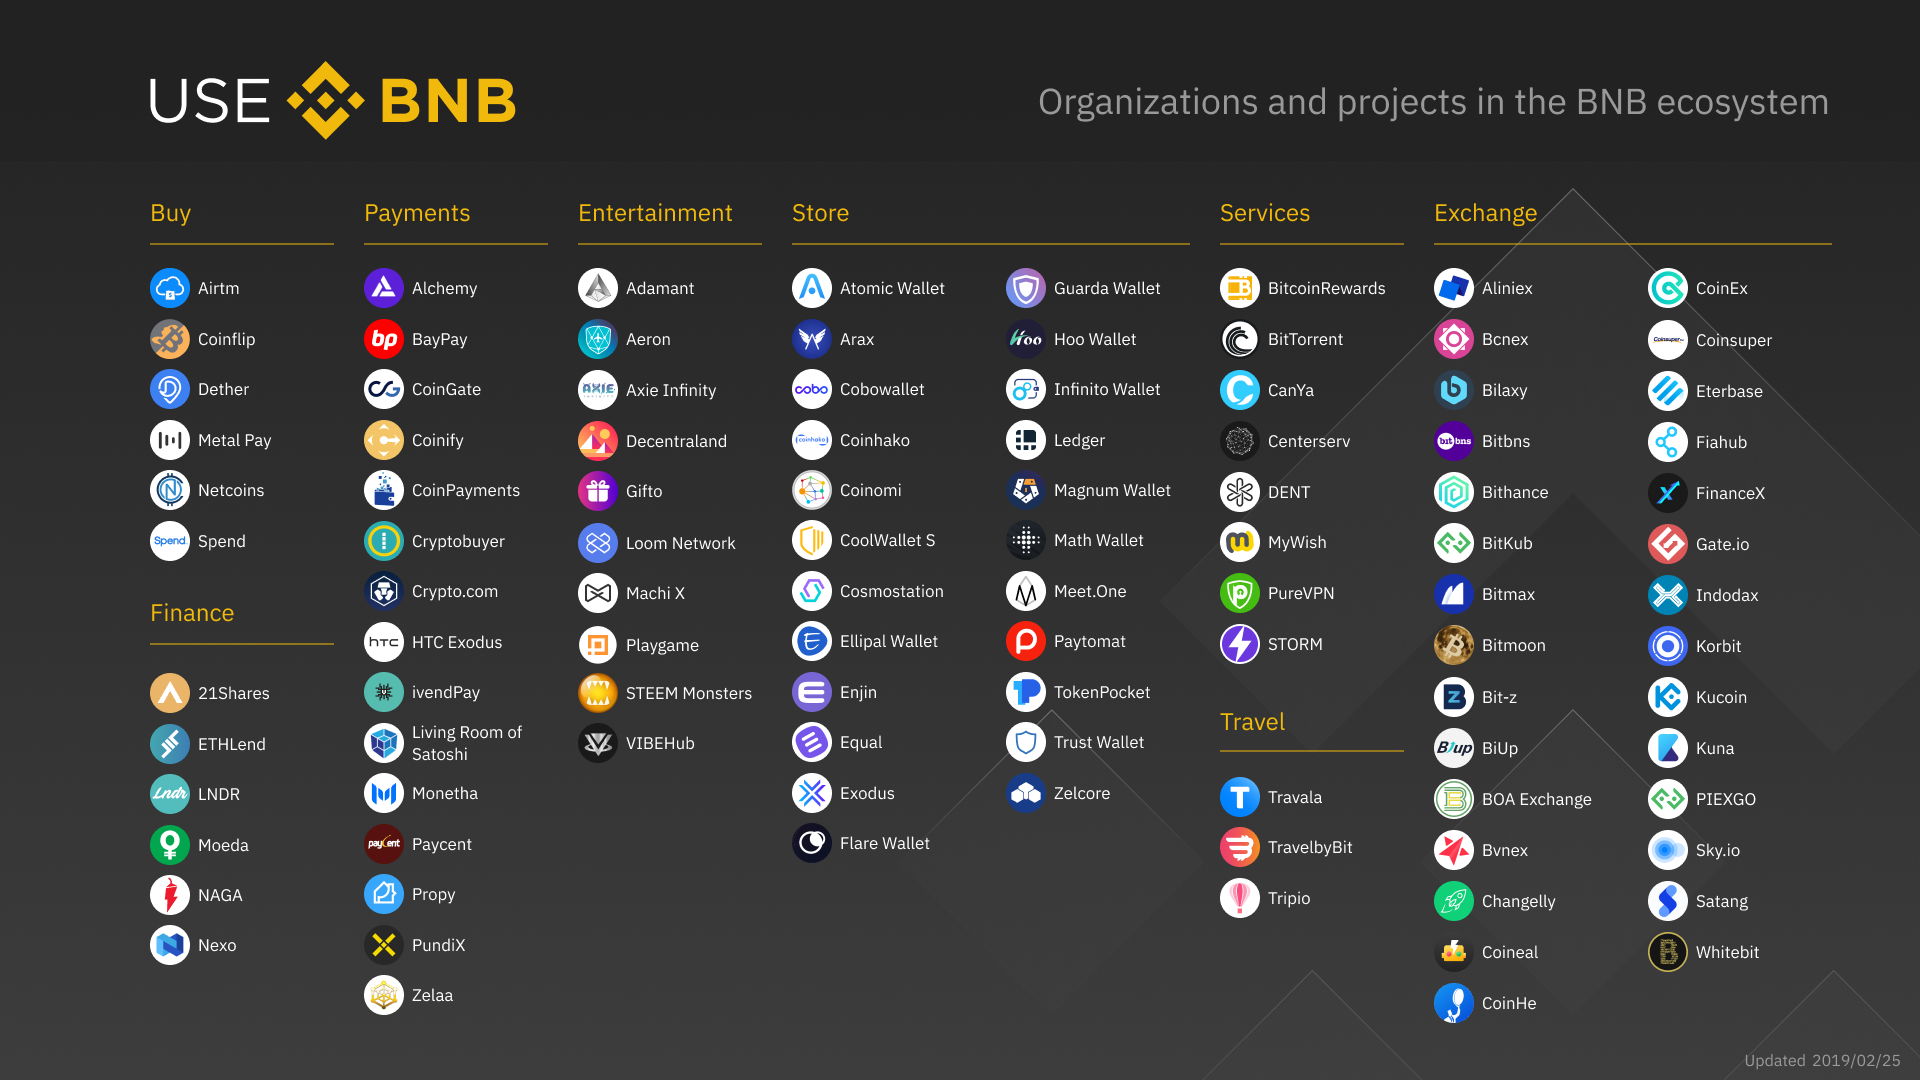 Organizations and projects in the BNB ecosystem